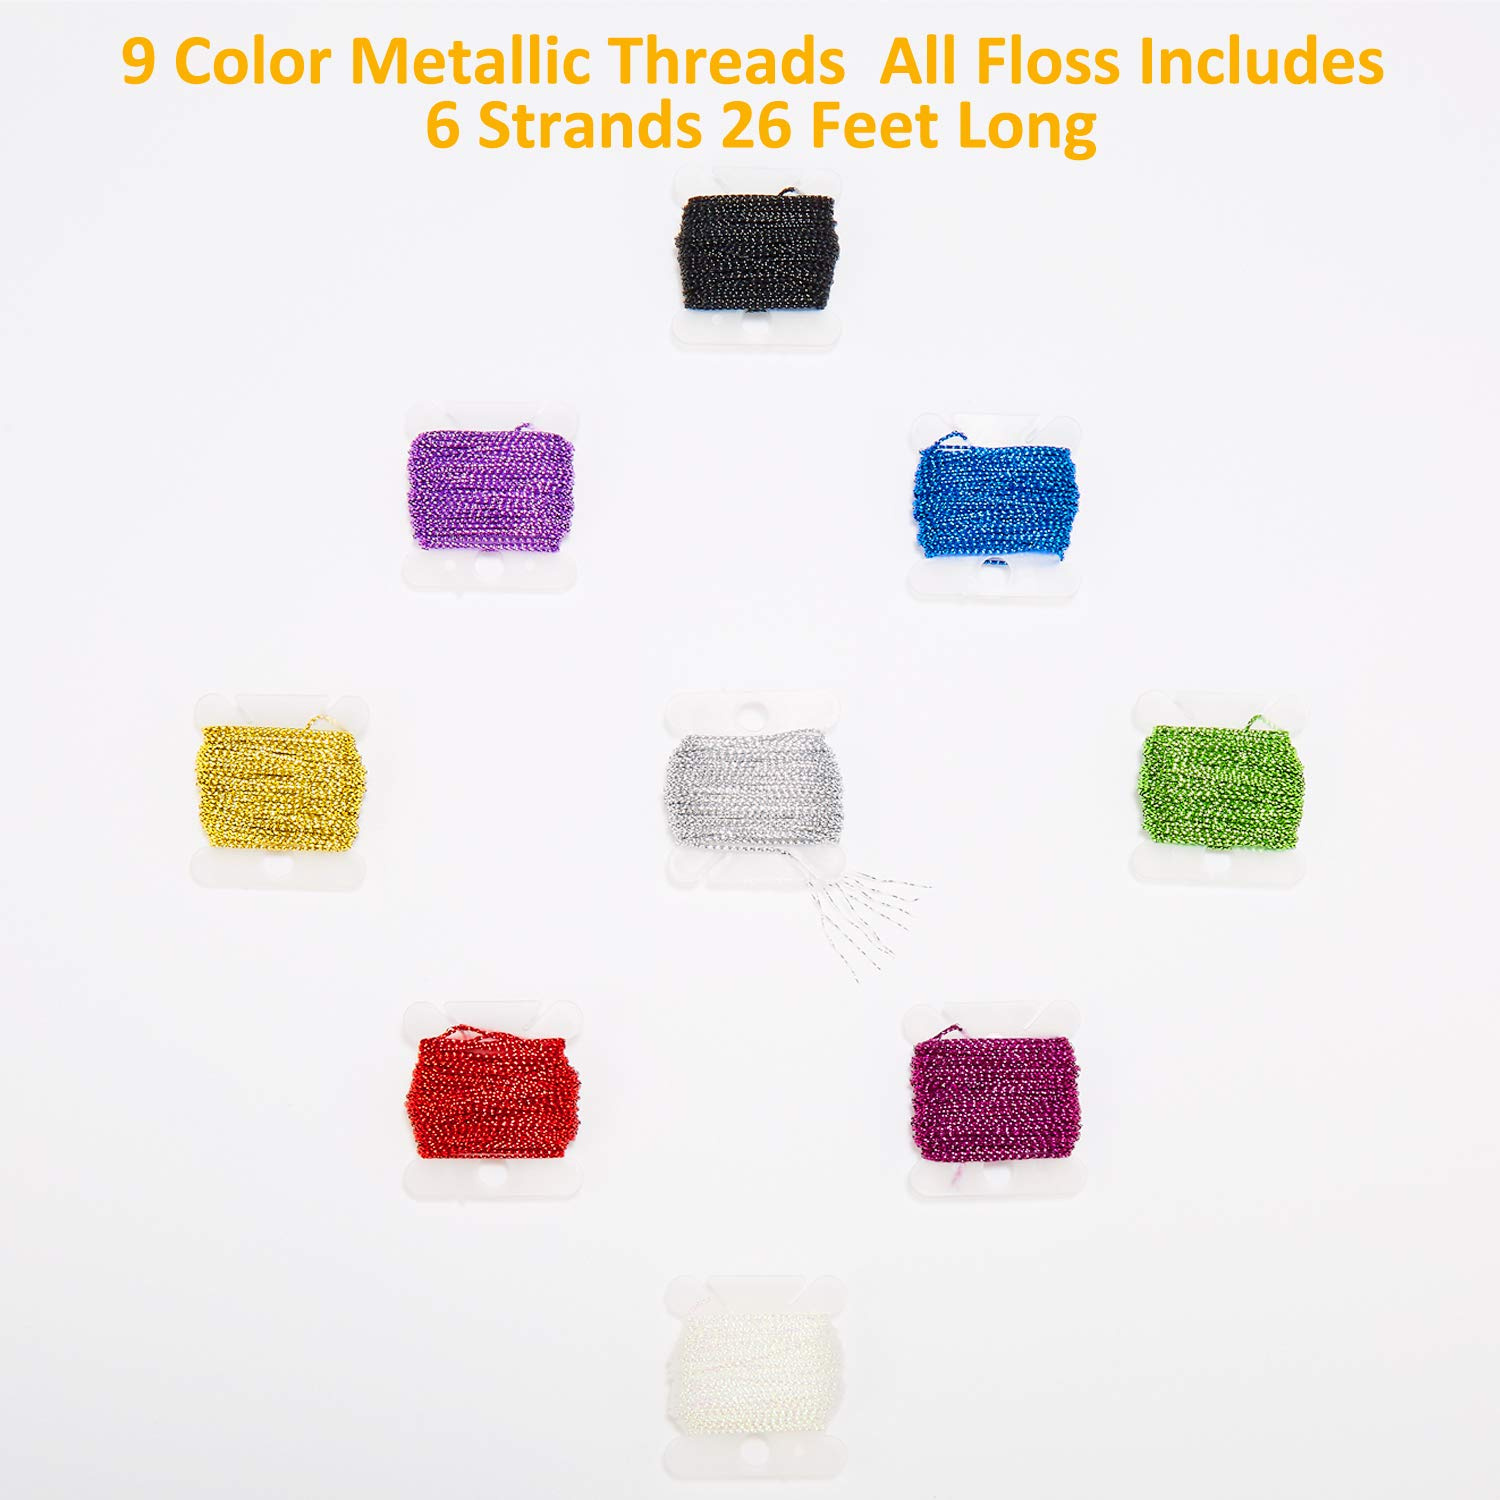 MXRS 50Pcs Skeins Embroidery Floss Cross Stitch Supplies Cross Stitch Thread with 16 Pcs Embroidery Needles